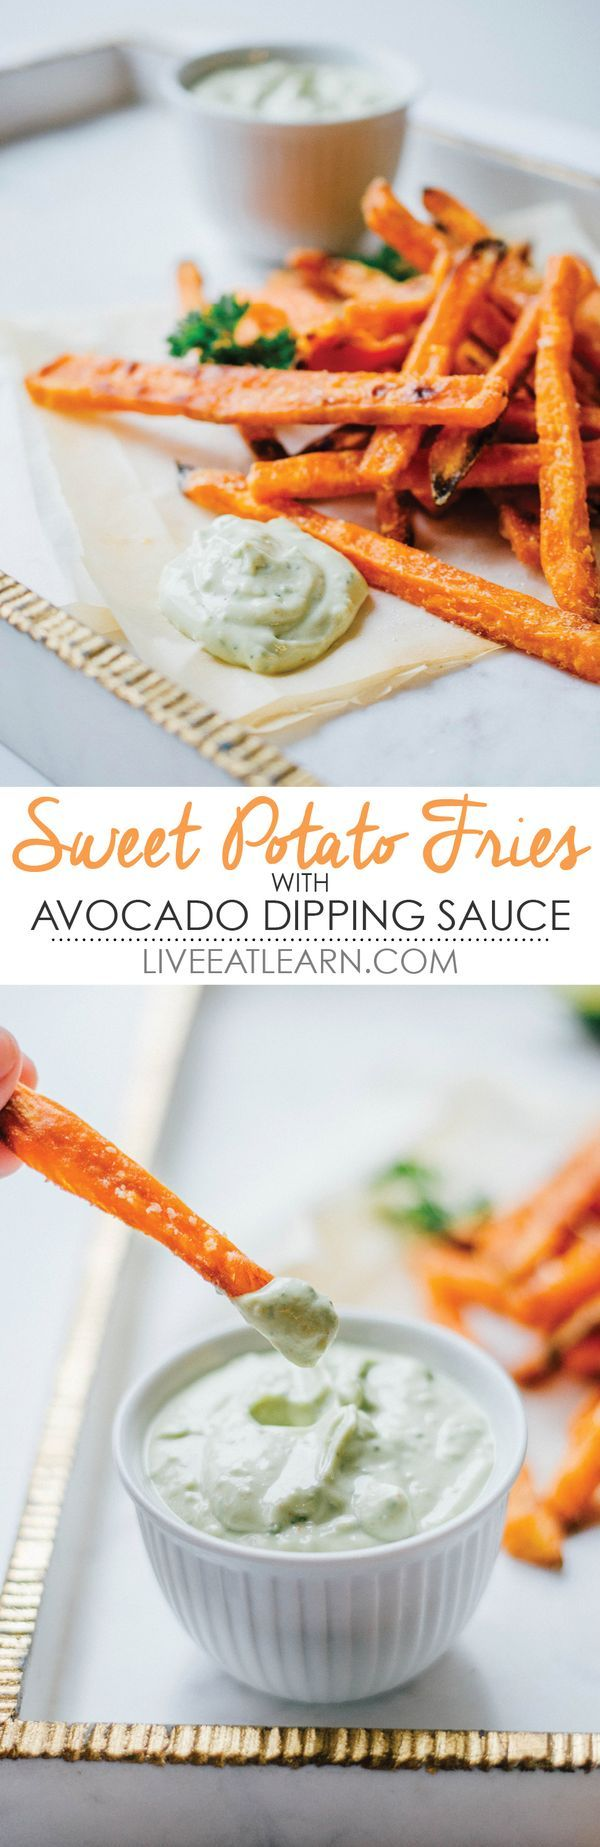 Crispy Baked Sweet Potato Fries With Greek Yogurt Avocado Dipping Sauce  Turned Out Delicious! Baking On A Greased Baking Sheet Without Tin Foil  Works Best